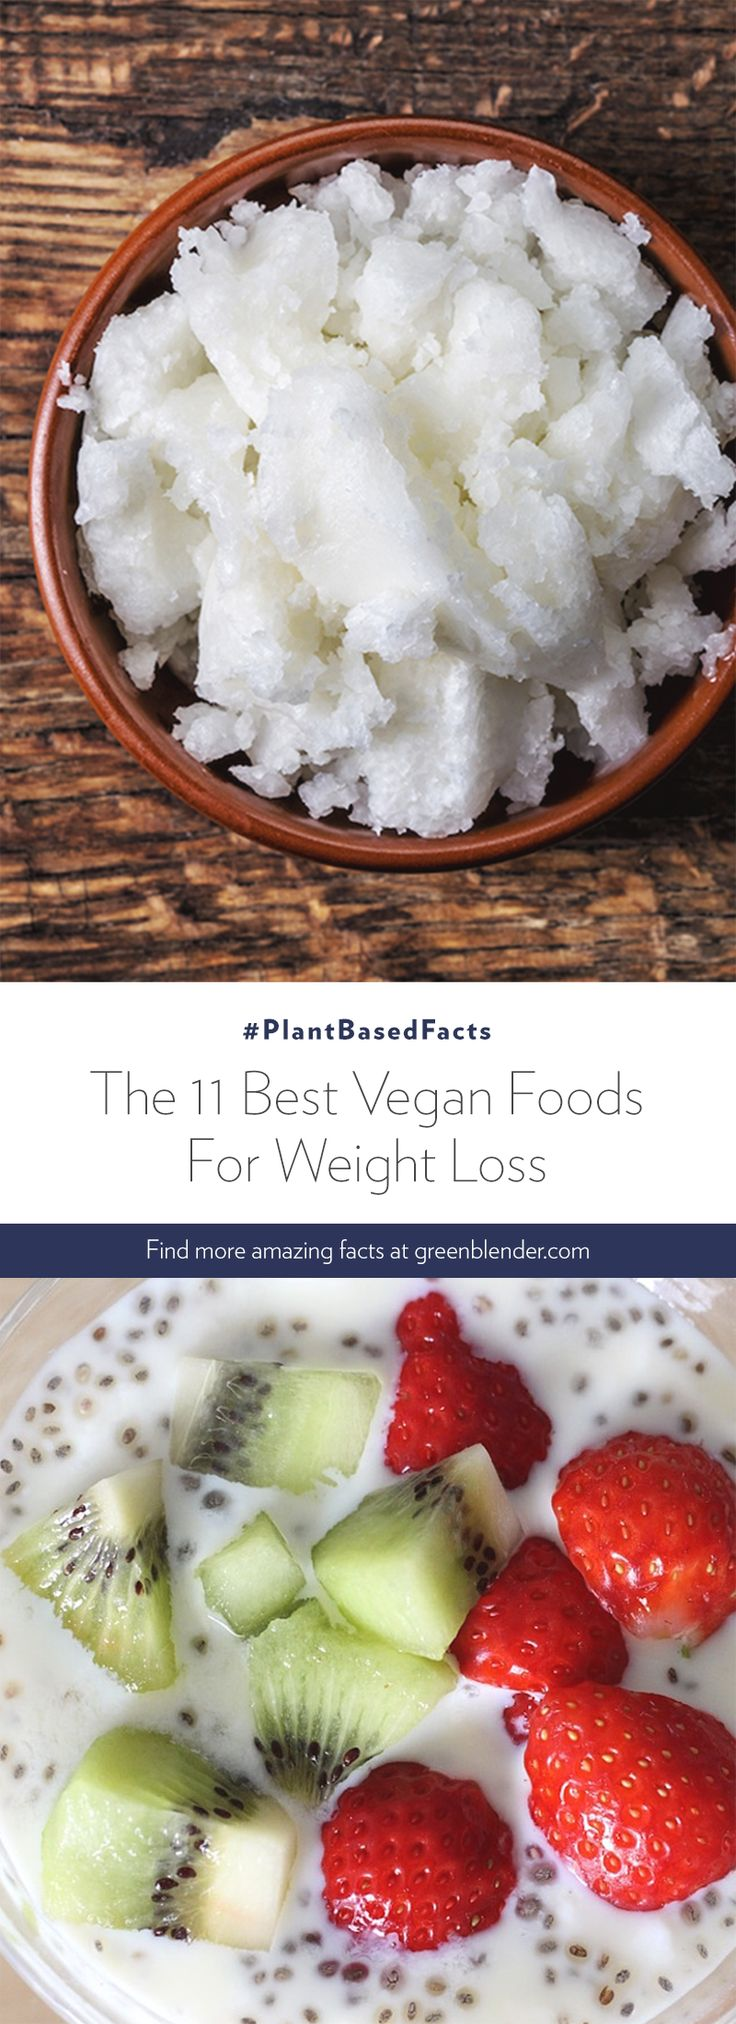 Best Vegan Foods For Weight Loss By GreenBlender